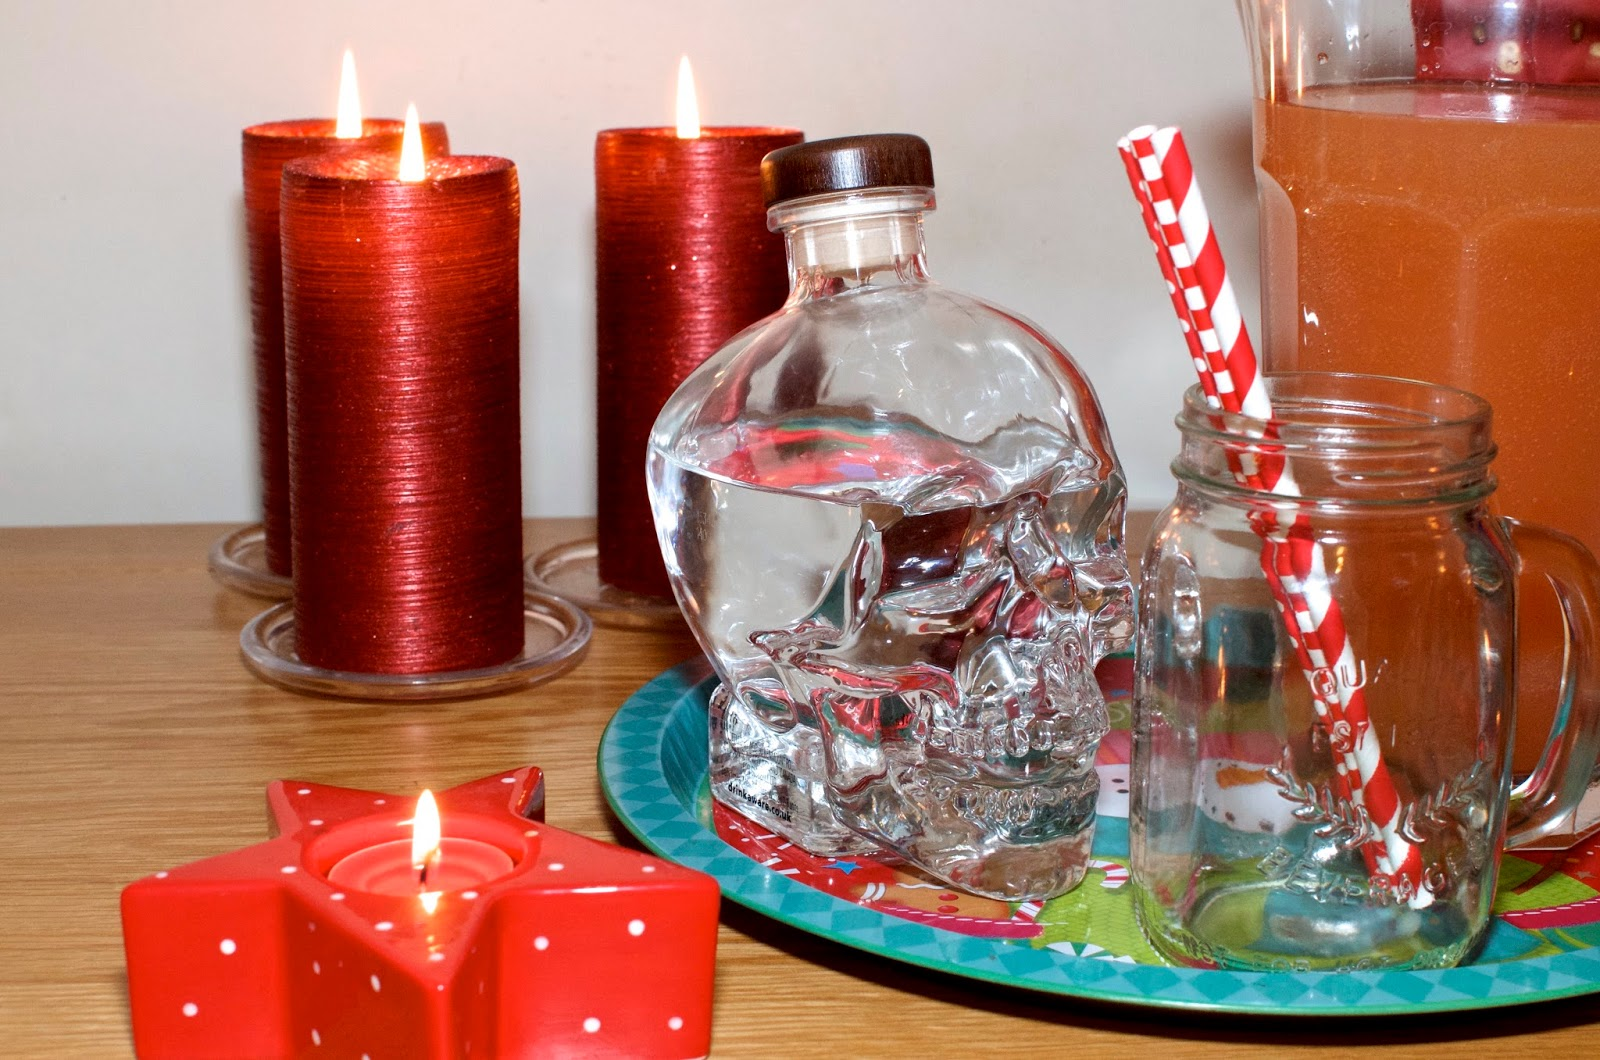 Crystal Skull Vodka Bottle, red candles, straws, jam jar glass and pink punch